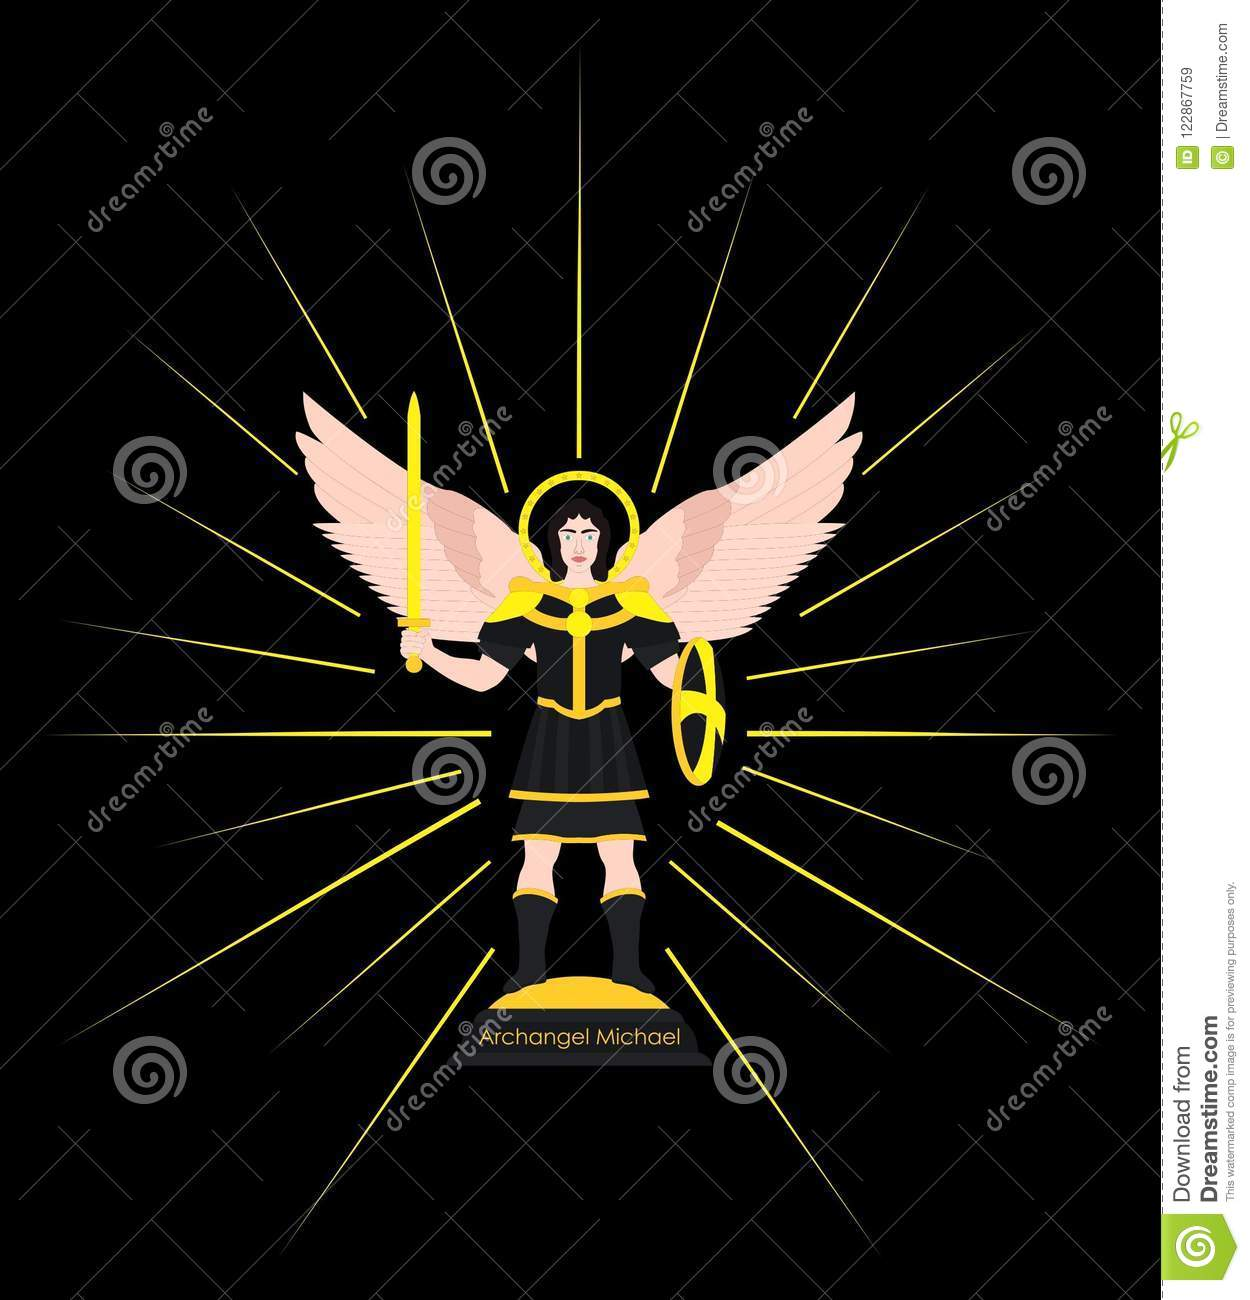 archangel michael symbol - HD 1250×1300